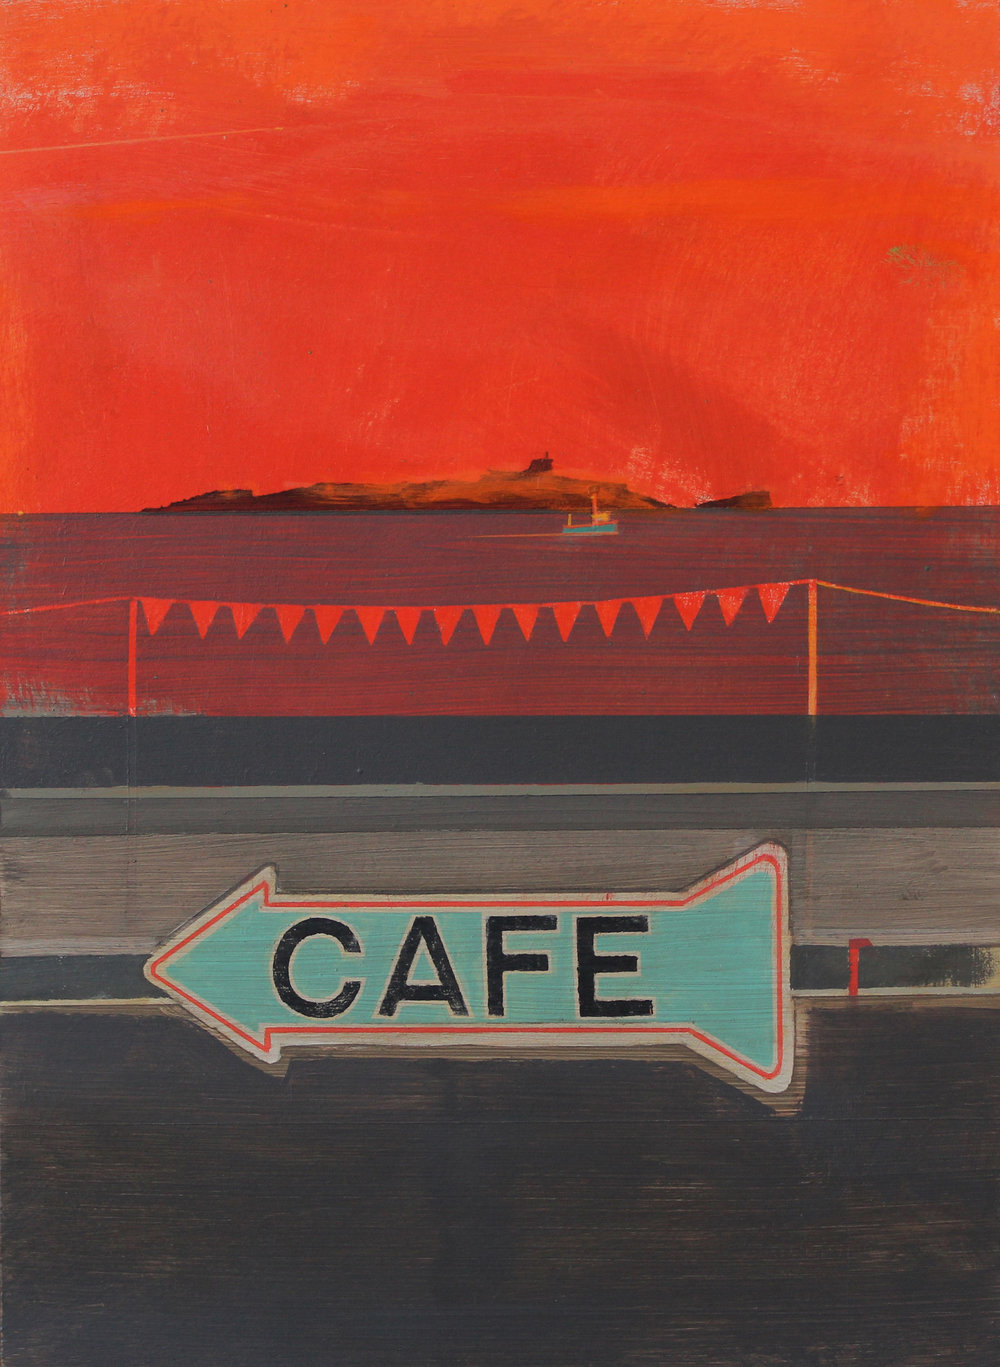 Cafe sign at sunset, Mousehole.